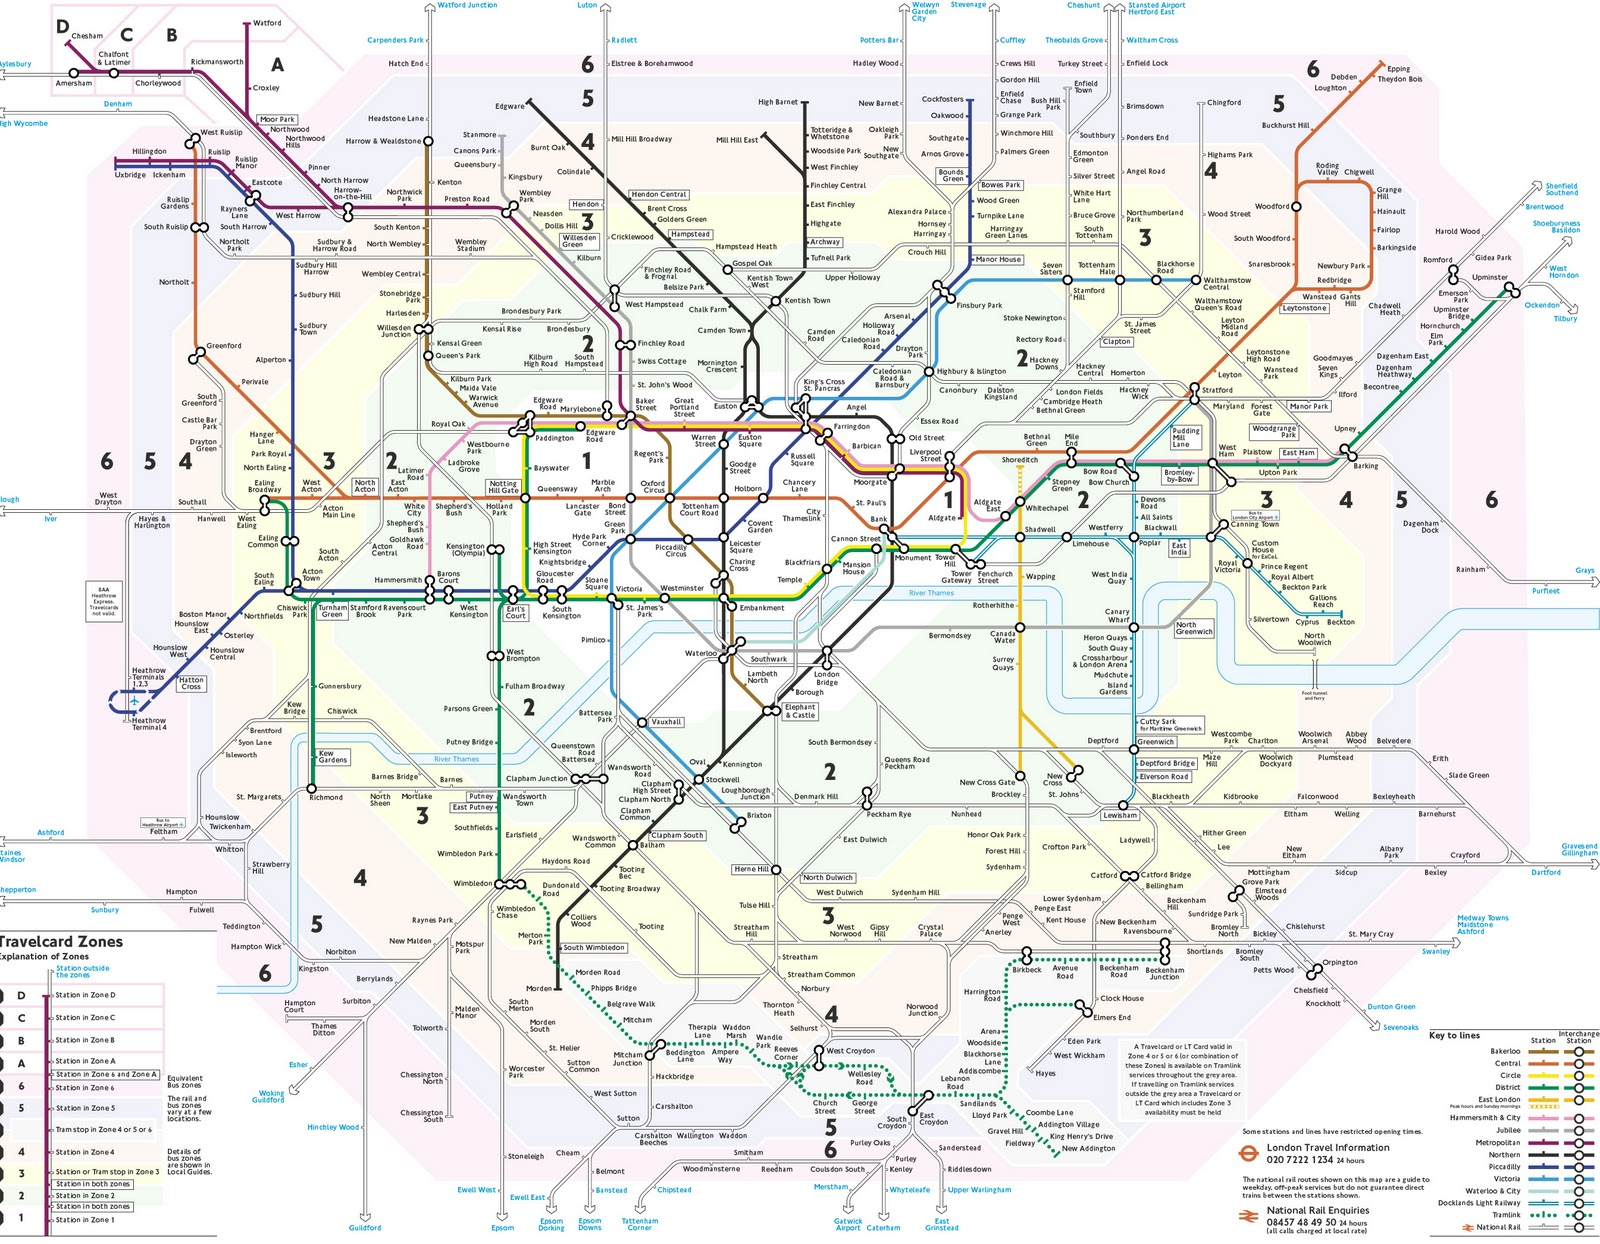 tube map and london underground Mylondonmap is a free interactive tube map of london allowing you to view the  london underground on top of a street map.